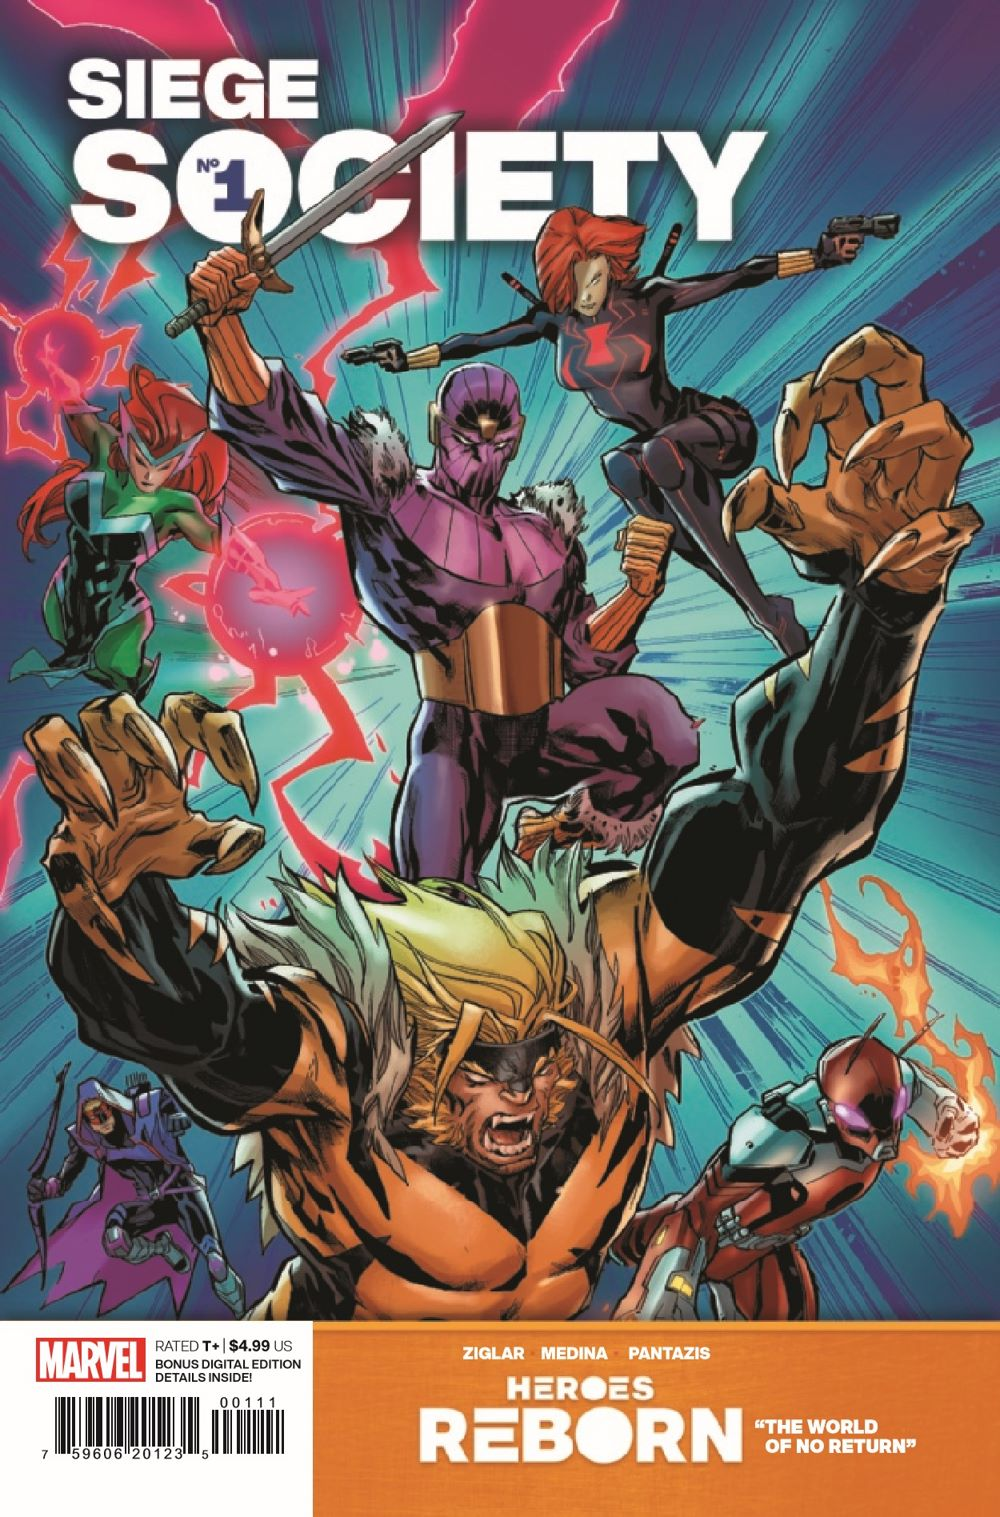 HRSIEGESOCIETY2021001_Preview-1 ComicList Previews: HEROES REBORN SIEGE SOCIETY #1